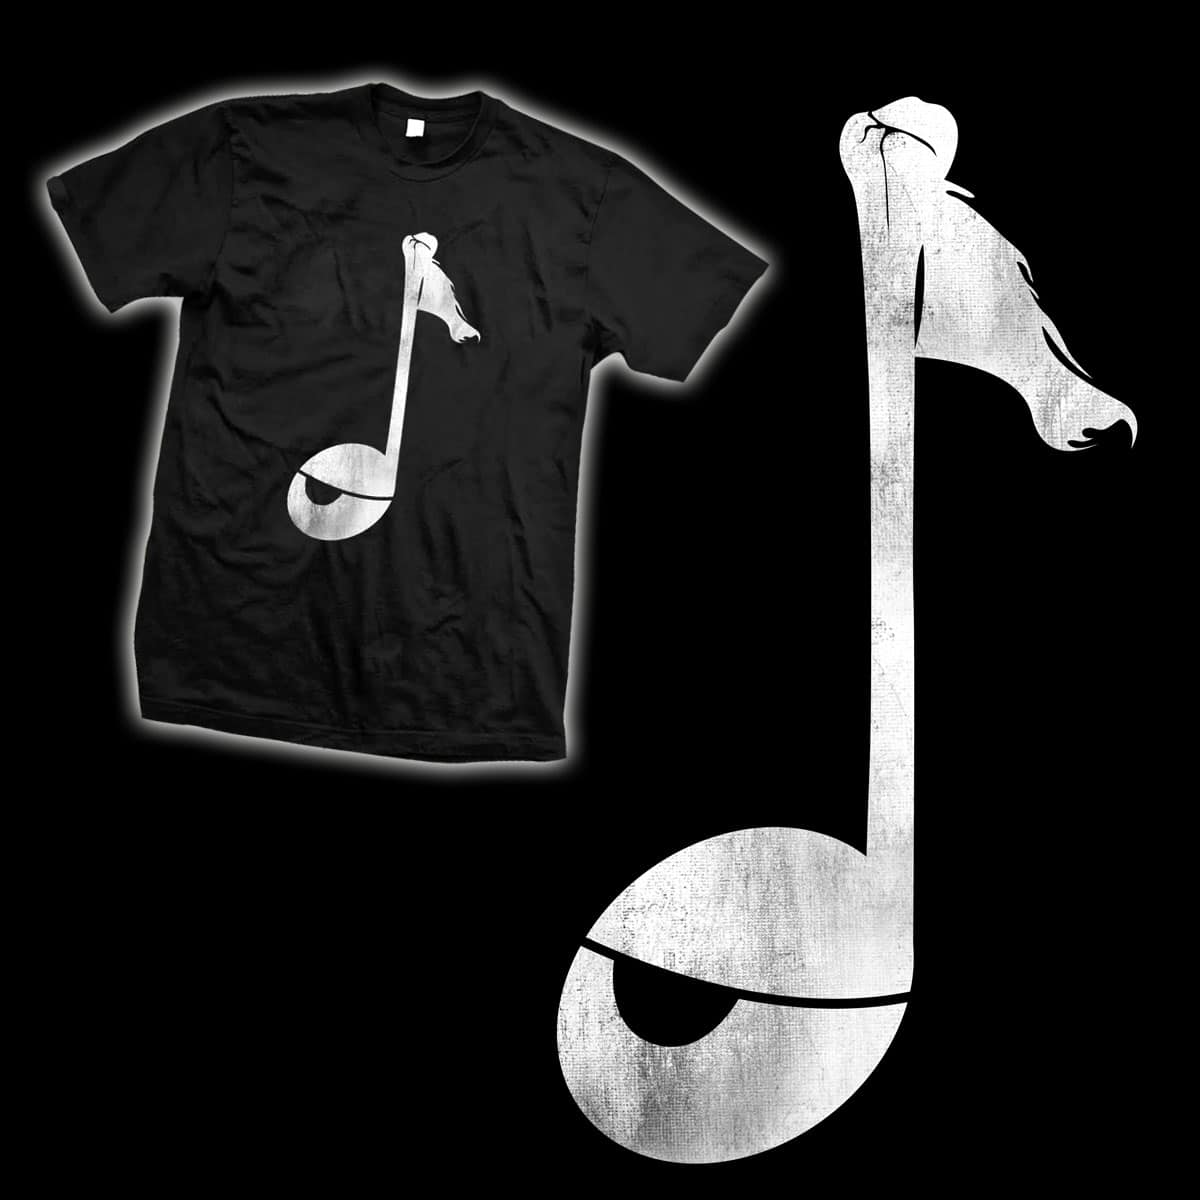 Pirate Music by mainial on Threadless